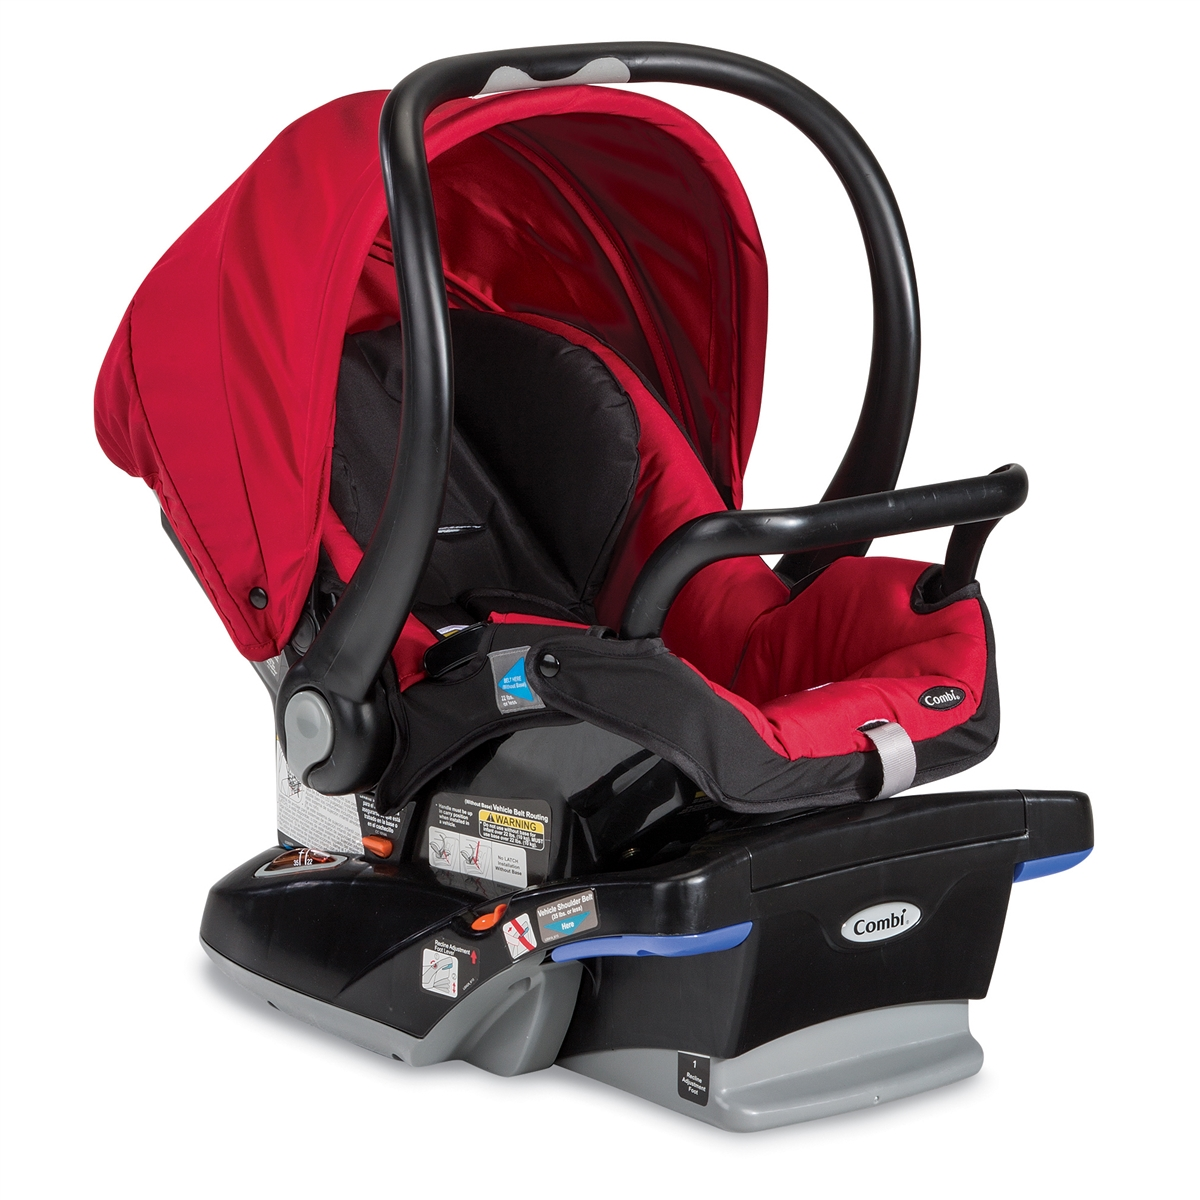 Infant Carrier Car Seat Guide Shuttle Infant Car Seat